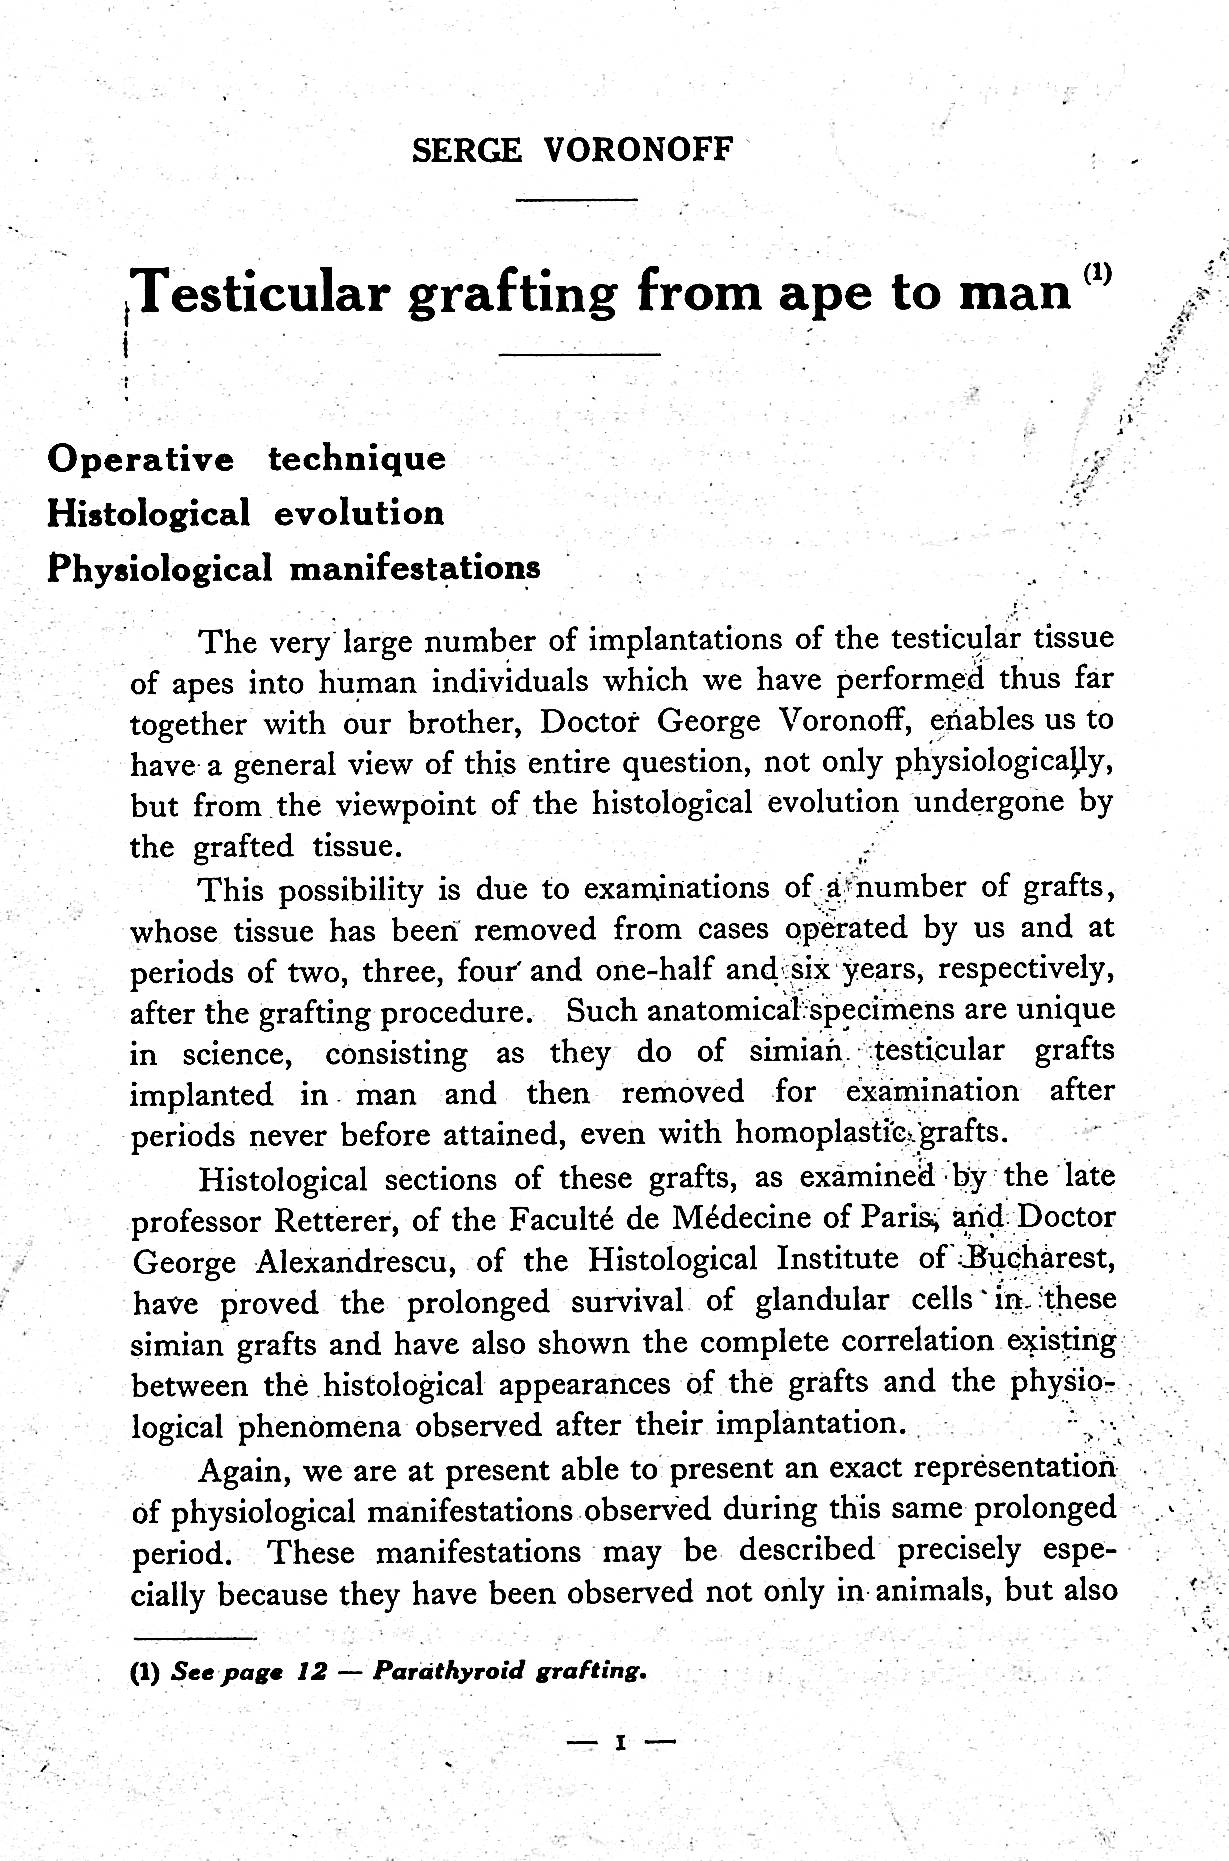 Image for 1) La greffe testiculaire. Technique operatoire, evolution histologique, manifestations physiologiques, published in Technique Chirurgicale, No 4, June 1967; 2) Testicular grafting from ape to man. Operative technique, histological evolution, physiological manifestations.